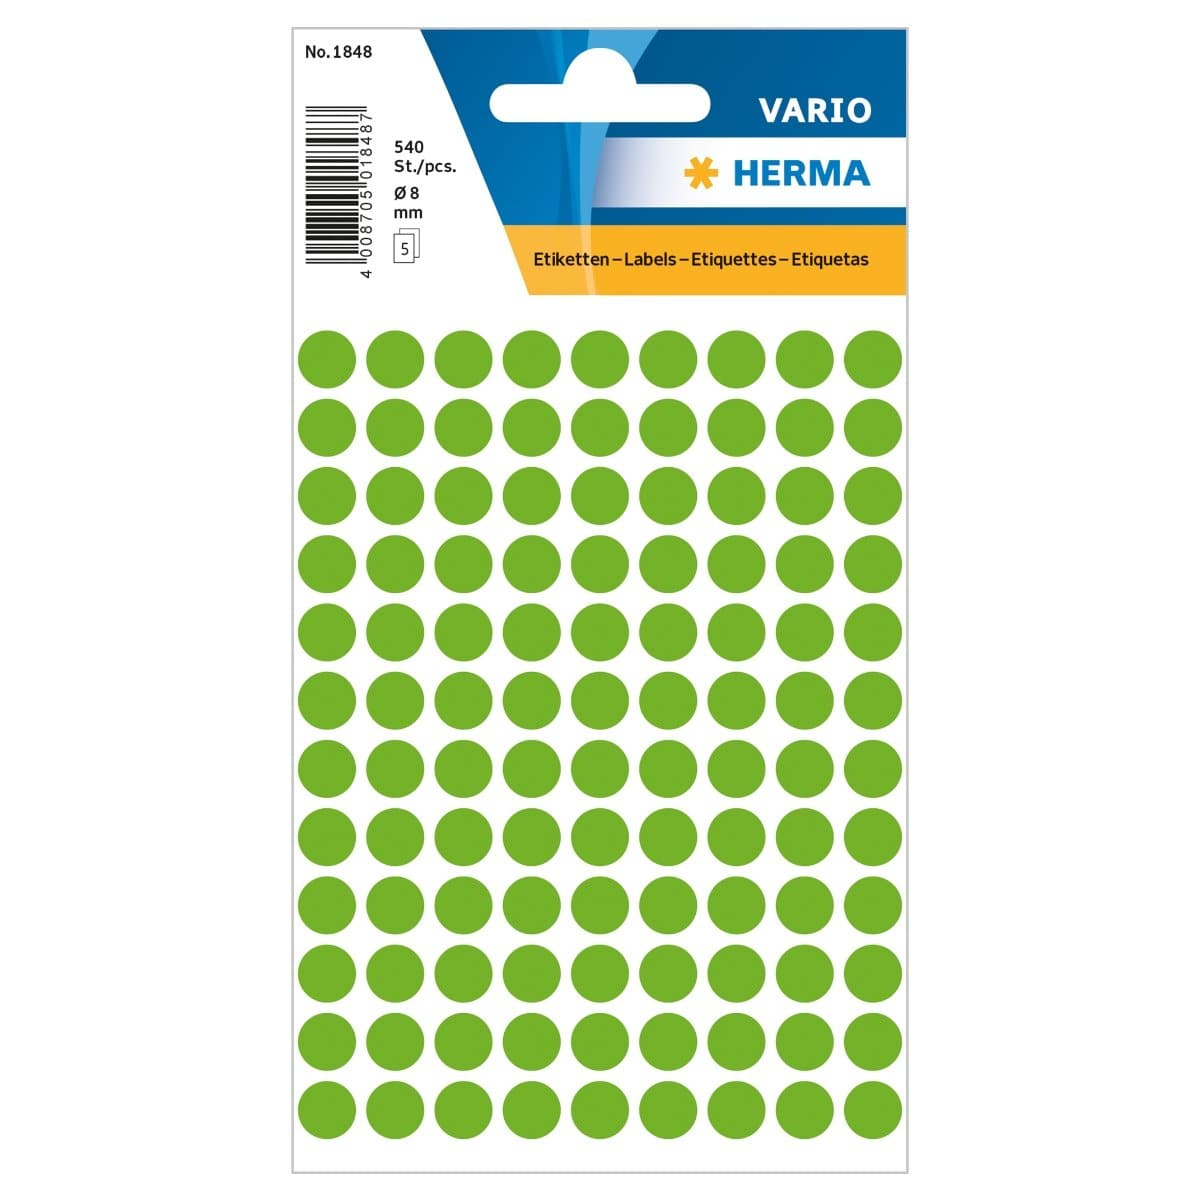 Herma Vario Sticker Color Dots, 8 mm, 540/pack, Fluo Green